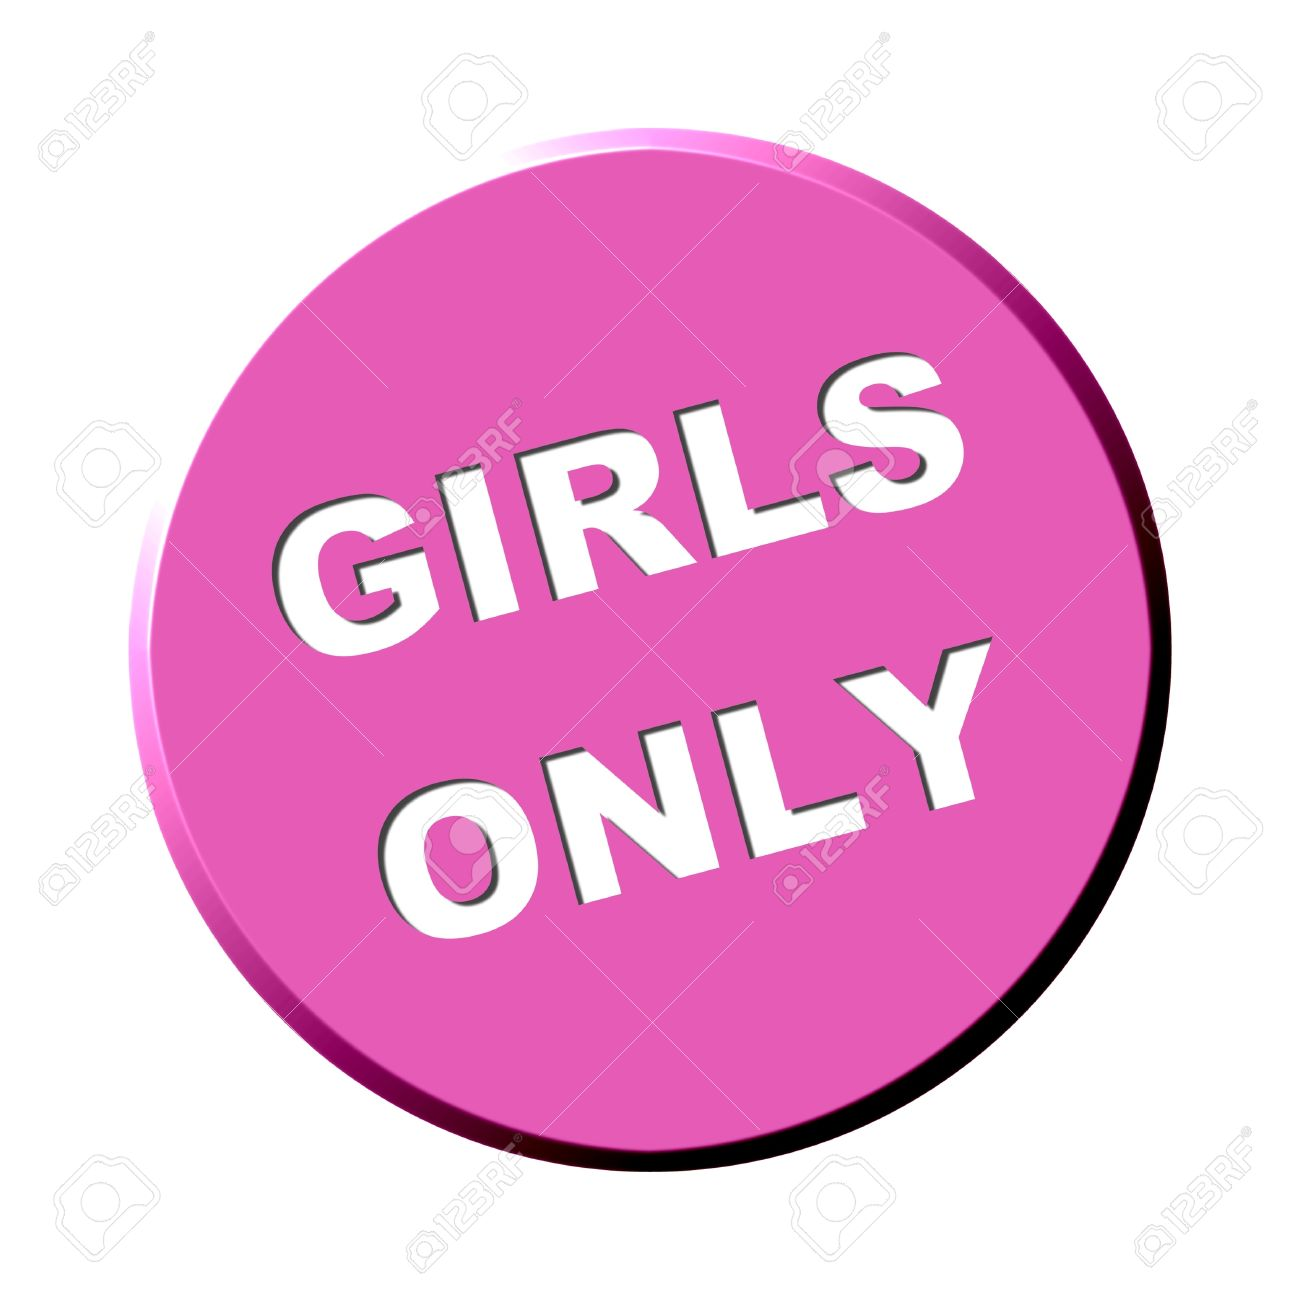 Some Pink Button - Girls Only Stock Photo, Picture And Royalty ...